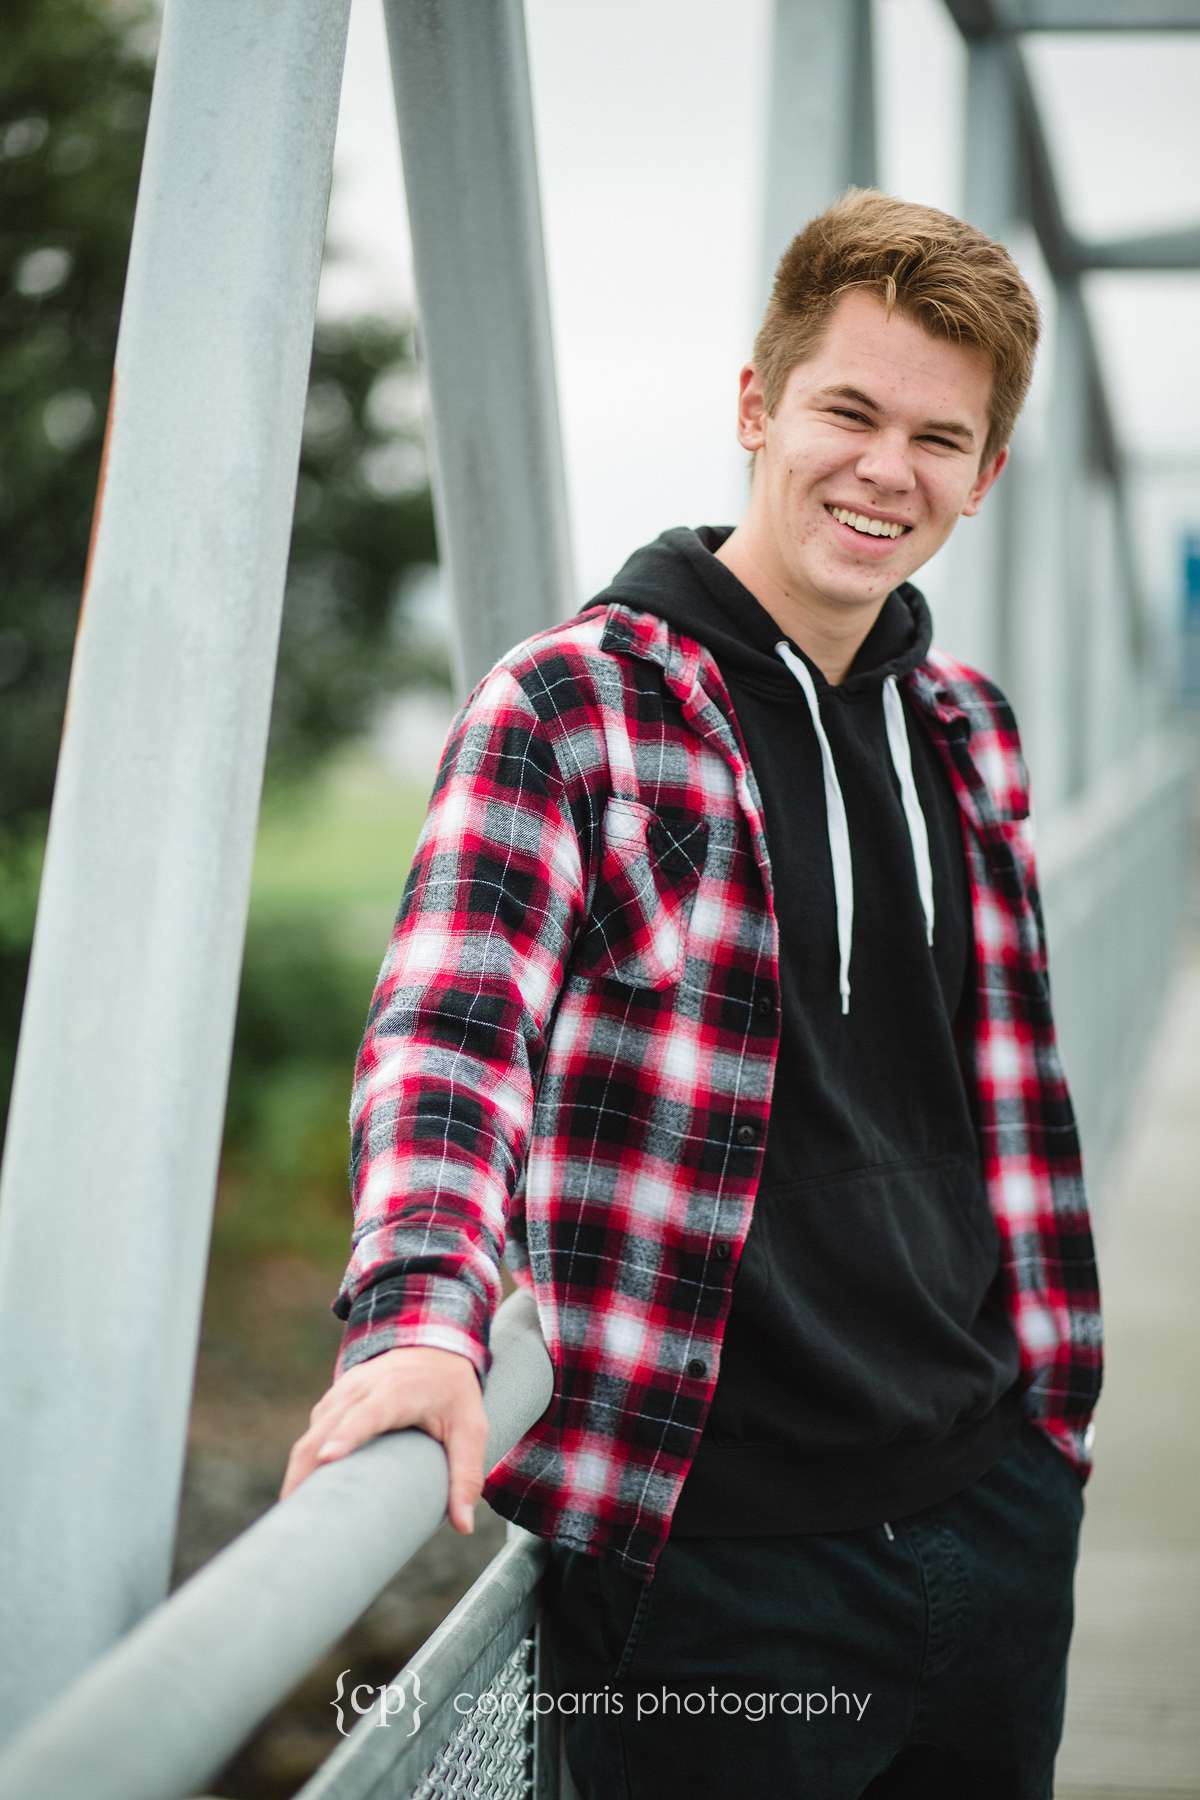 148-edmonds-beach-senior-portraits.jpg